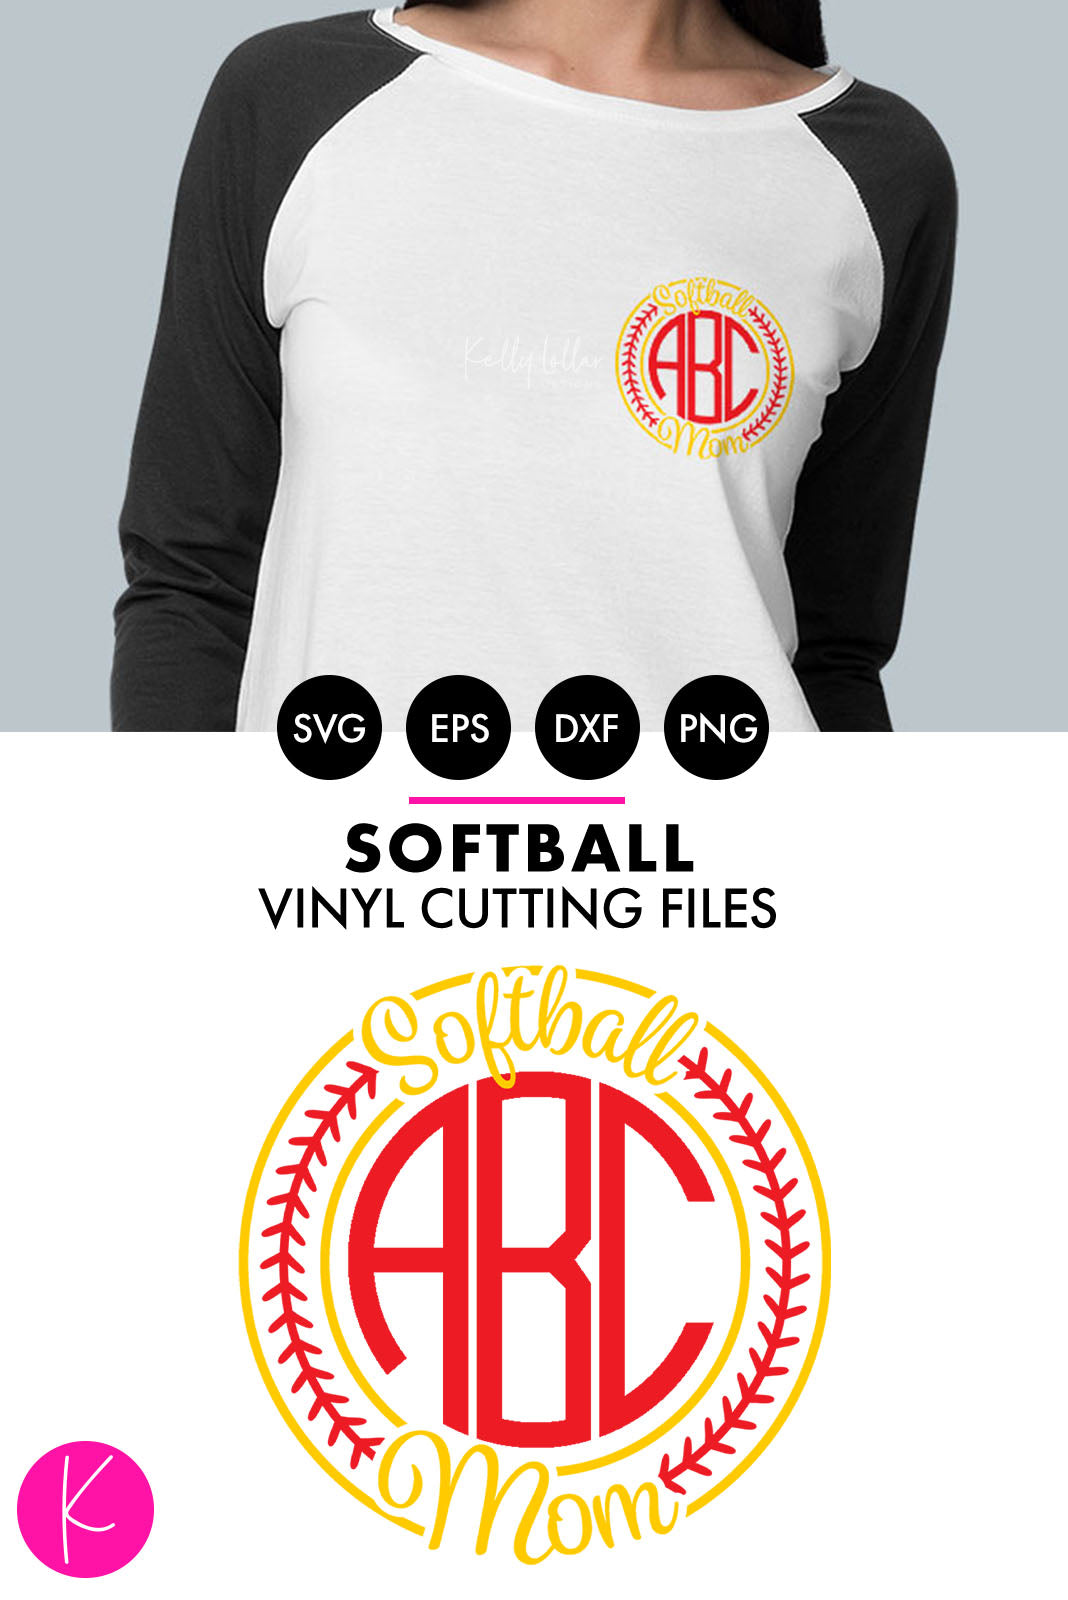 Softball Mom Monogram | SVG DXF EPS PNG Cut Files Softball Mom Monogram Frame with Stitch Circle | SVG DXF PNG Cut Files 1 file for each format circles, stitches and lettering welded separately for up to a 3 color